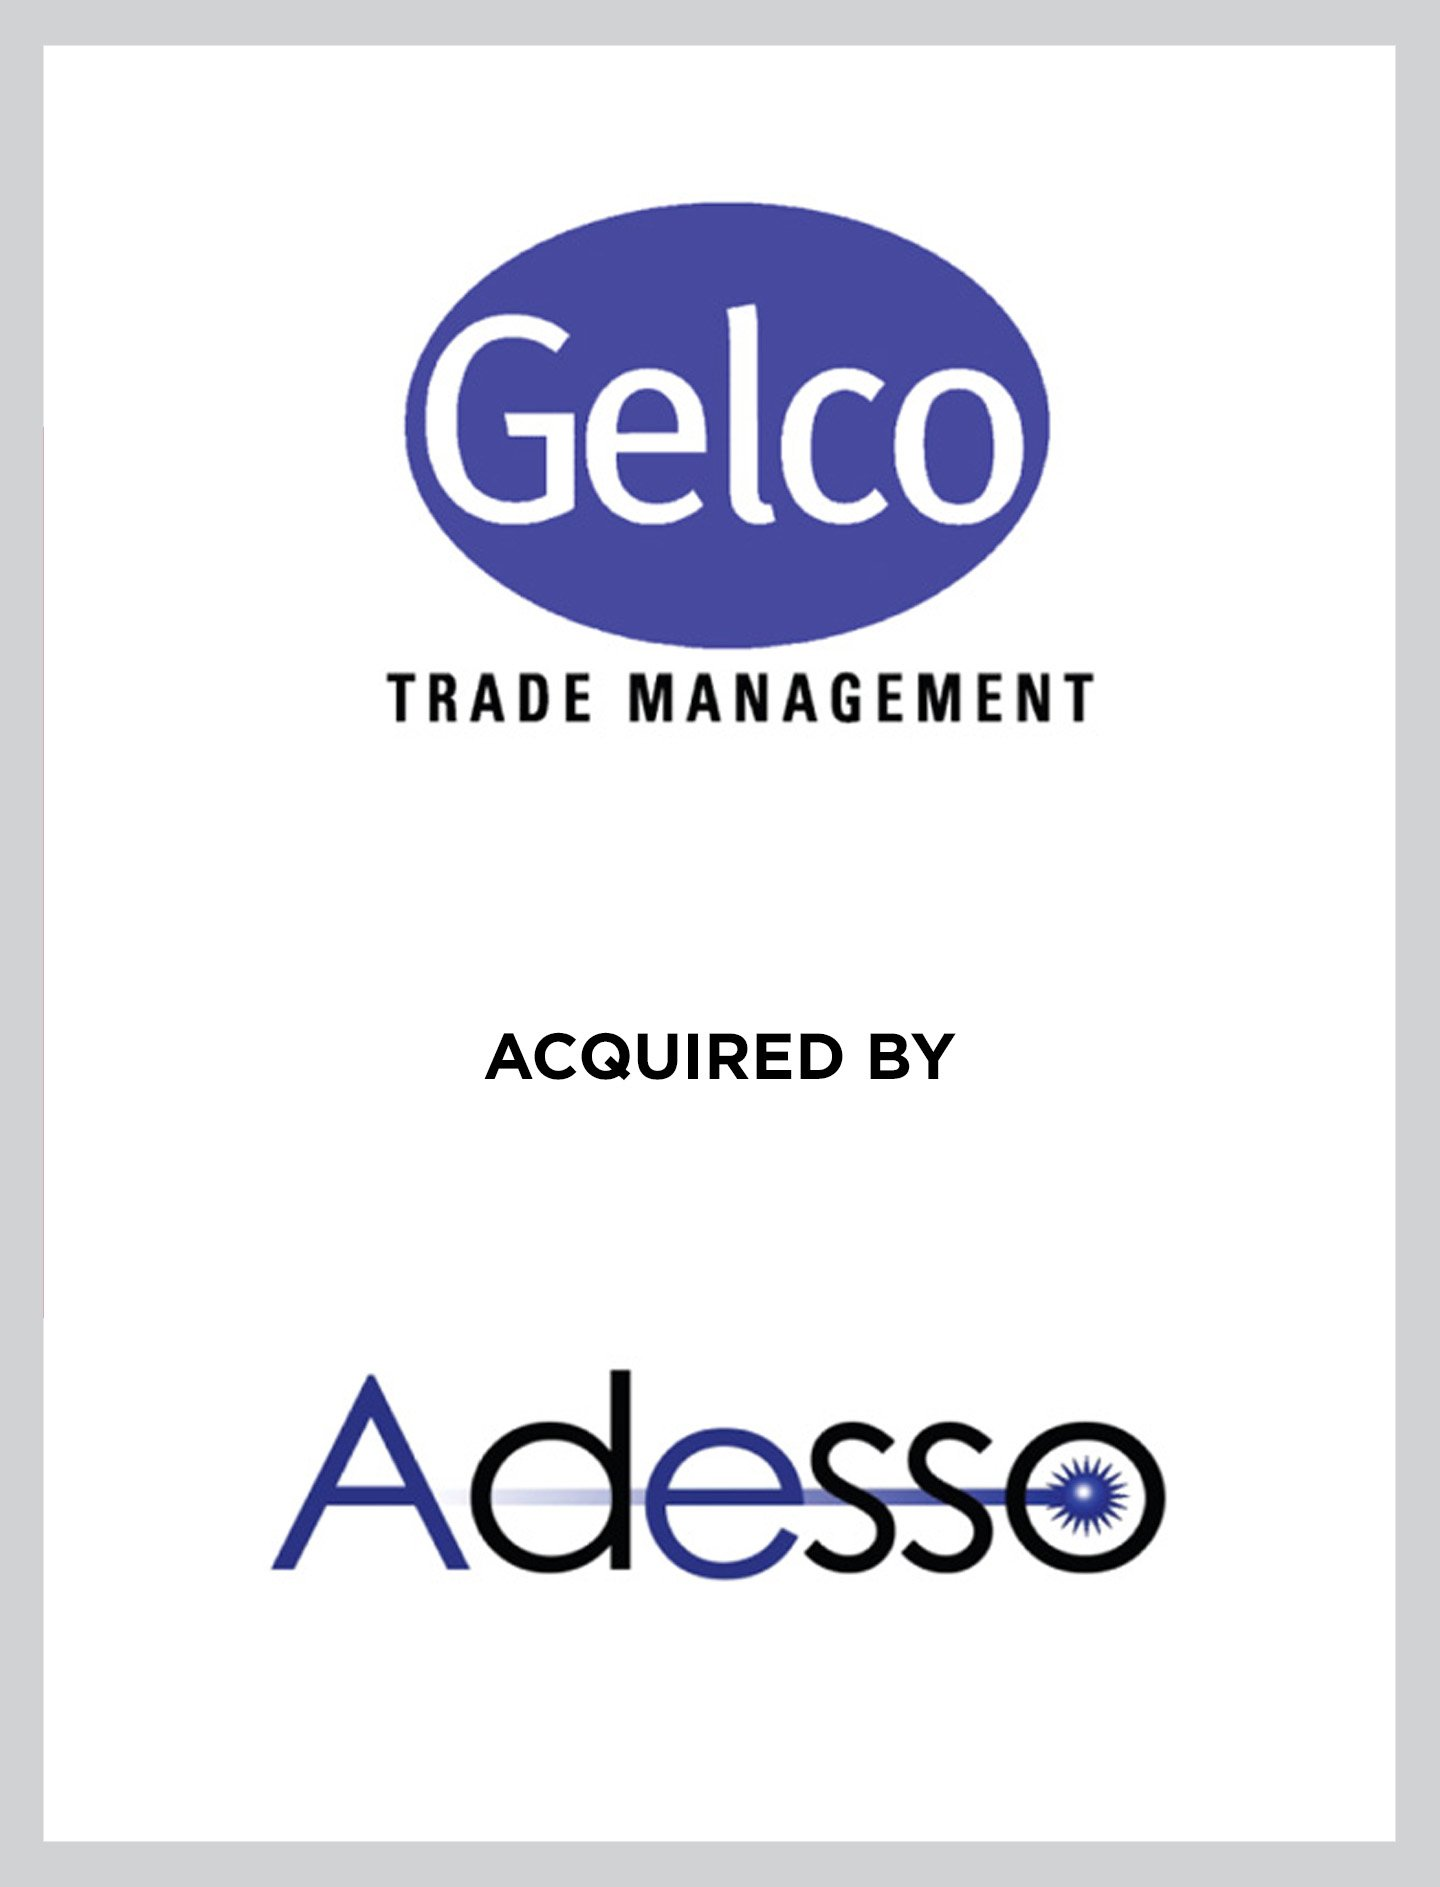 Gelco_as_0907